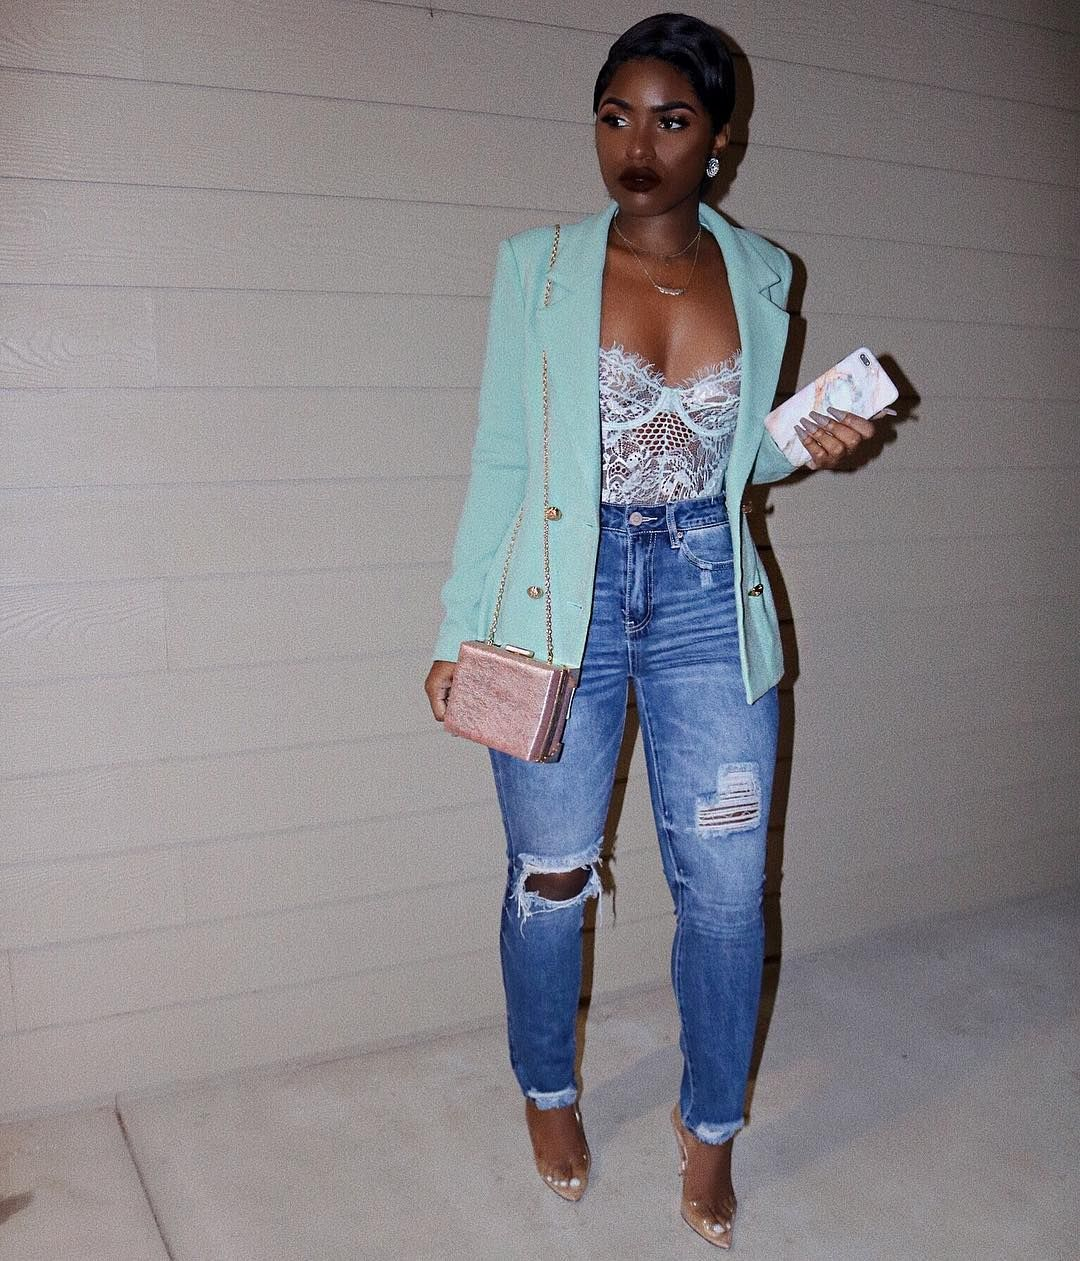 5c0da3c63c3b All the stylish Spring Outfits and latest short hairstyles and bridesmaids  hair #hairstyles #bridesmaids #womenswear #streetstyle #fashion  #latestfashion ...